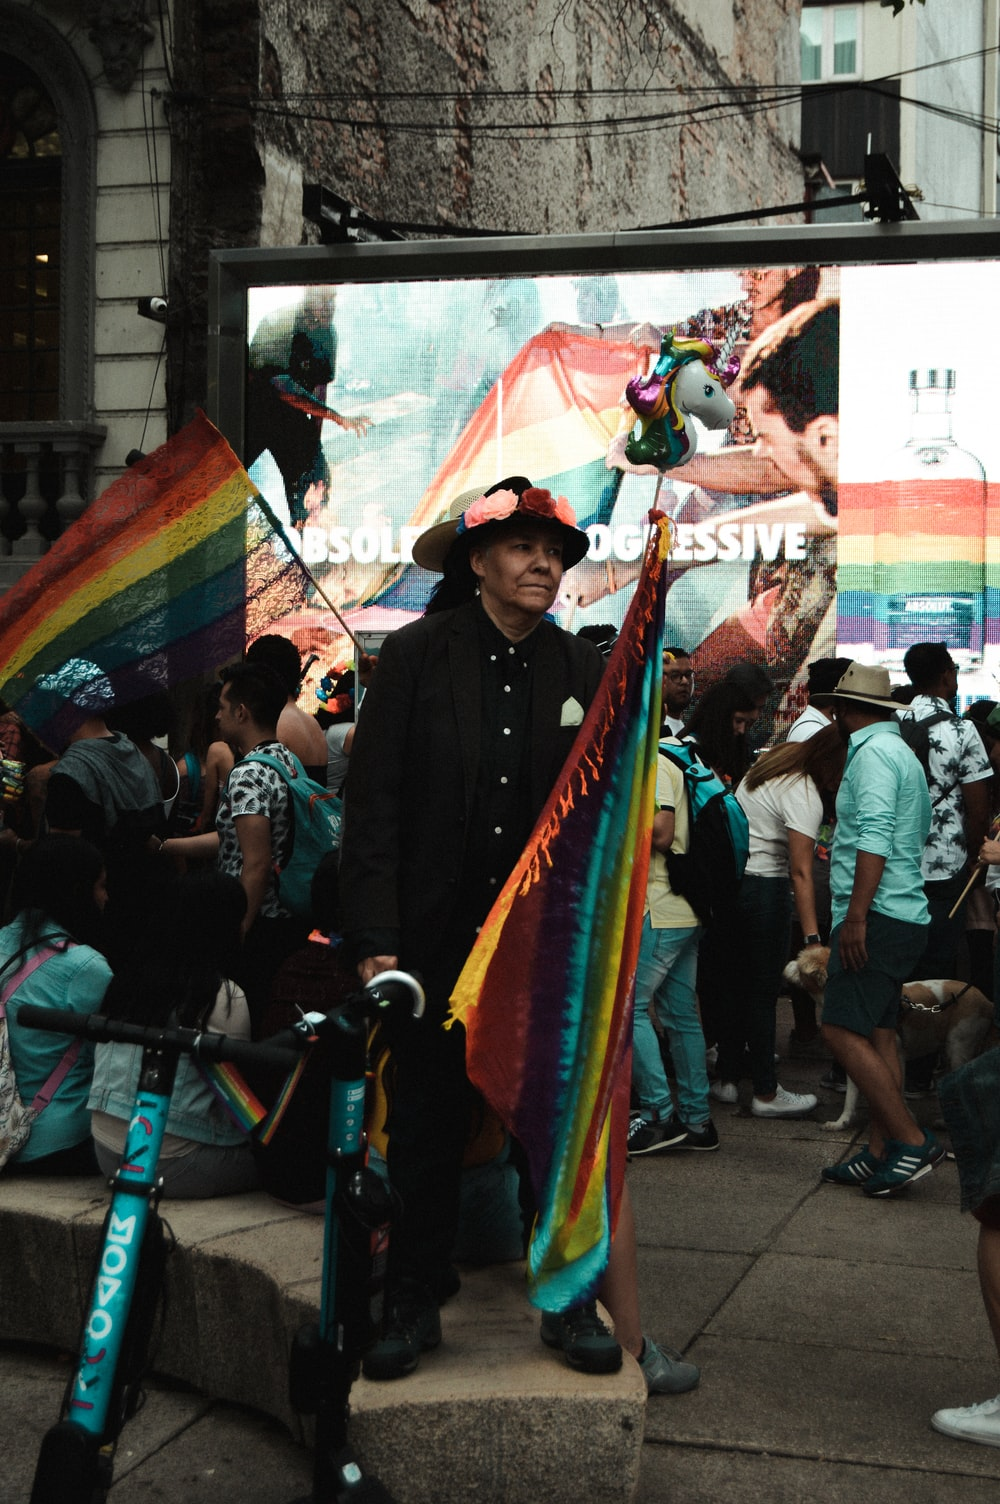 man standing and holding multicolored flag surrounded with people near building